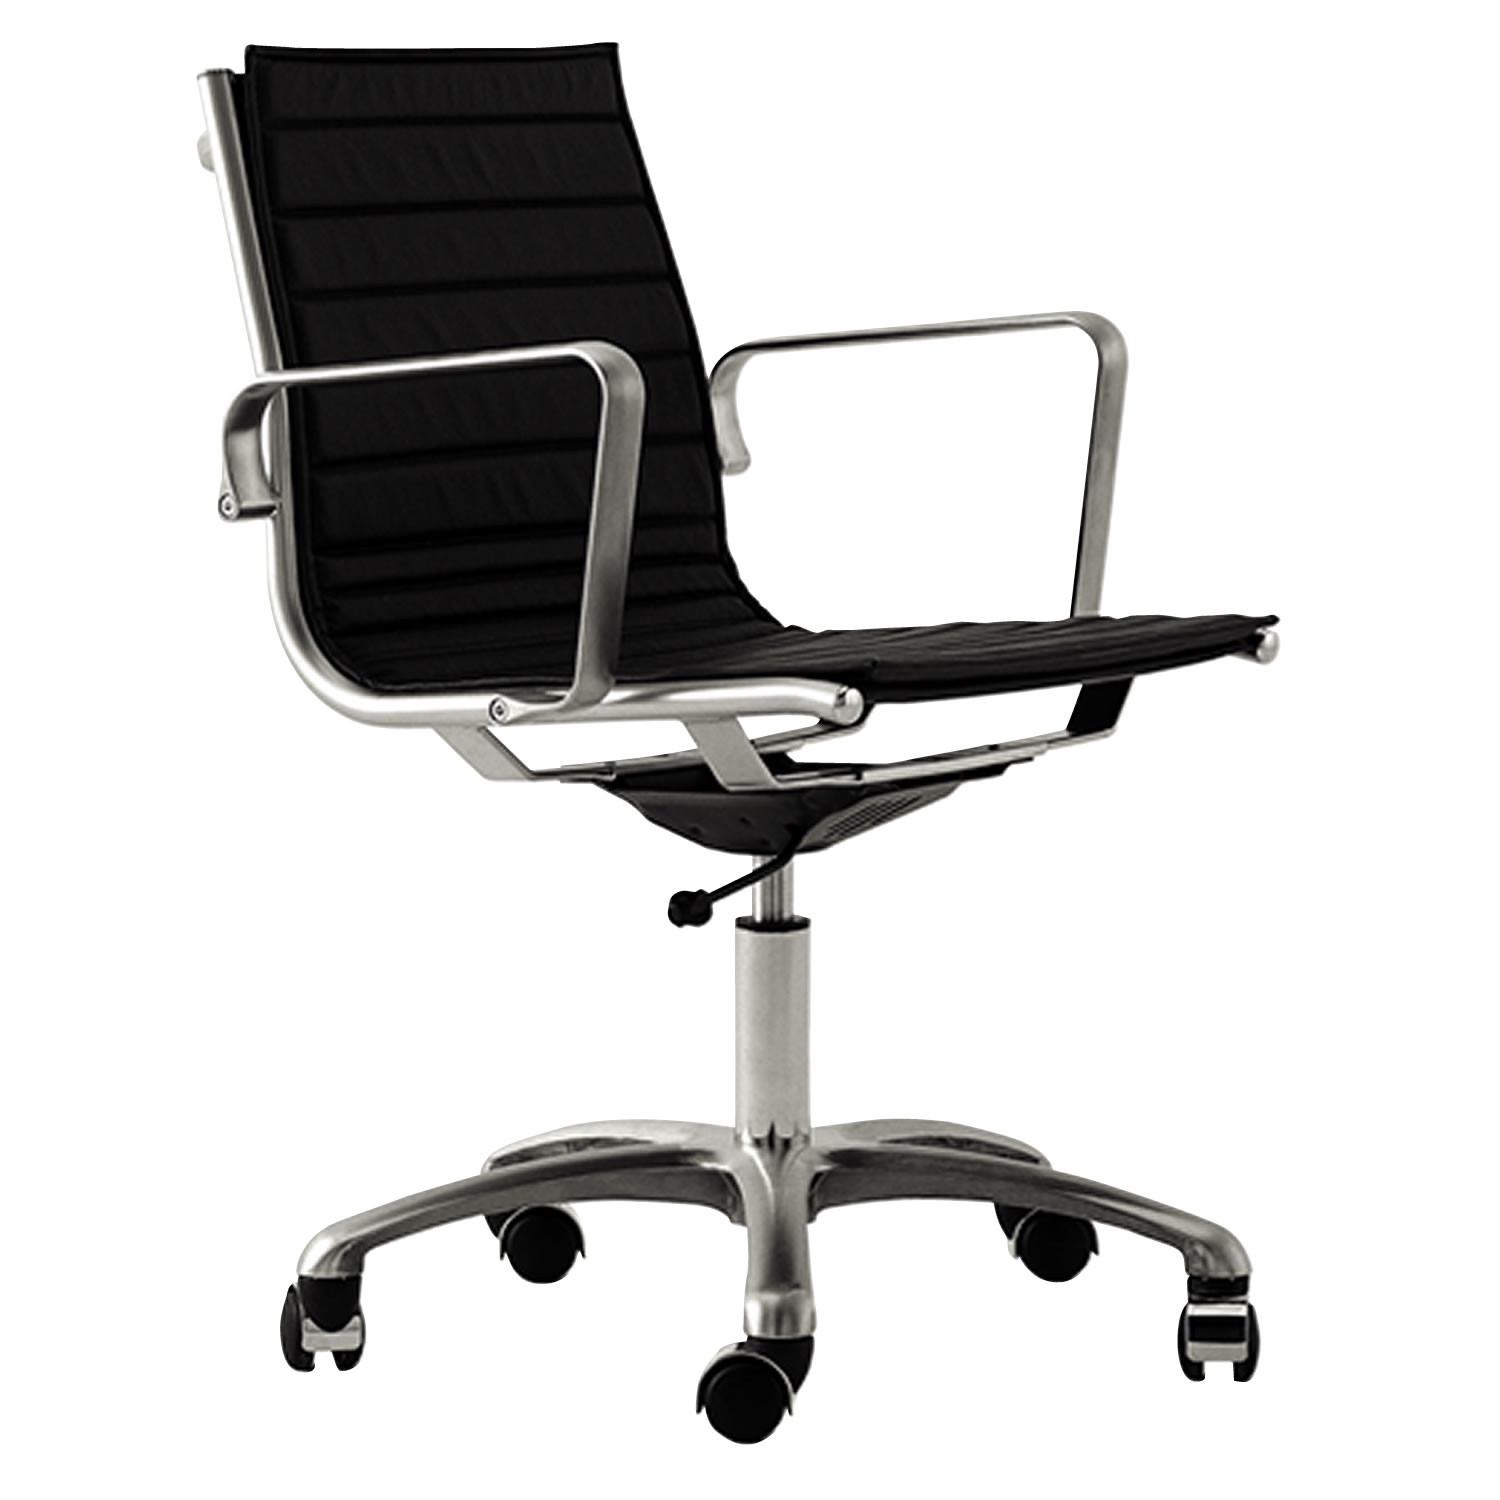 Light Office Seating with medium high backrest